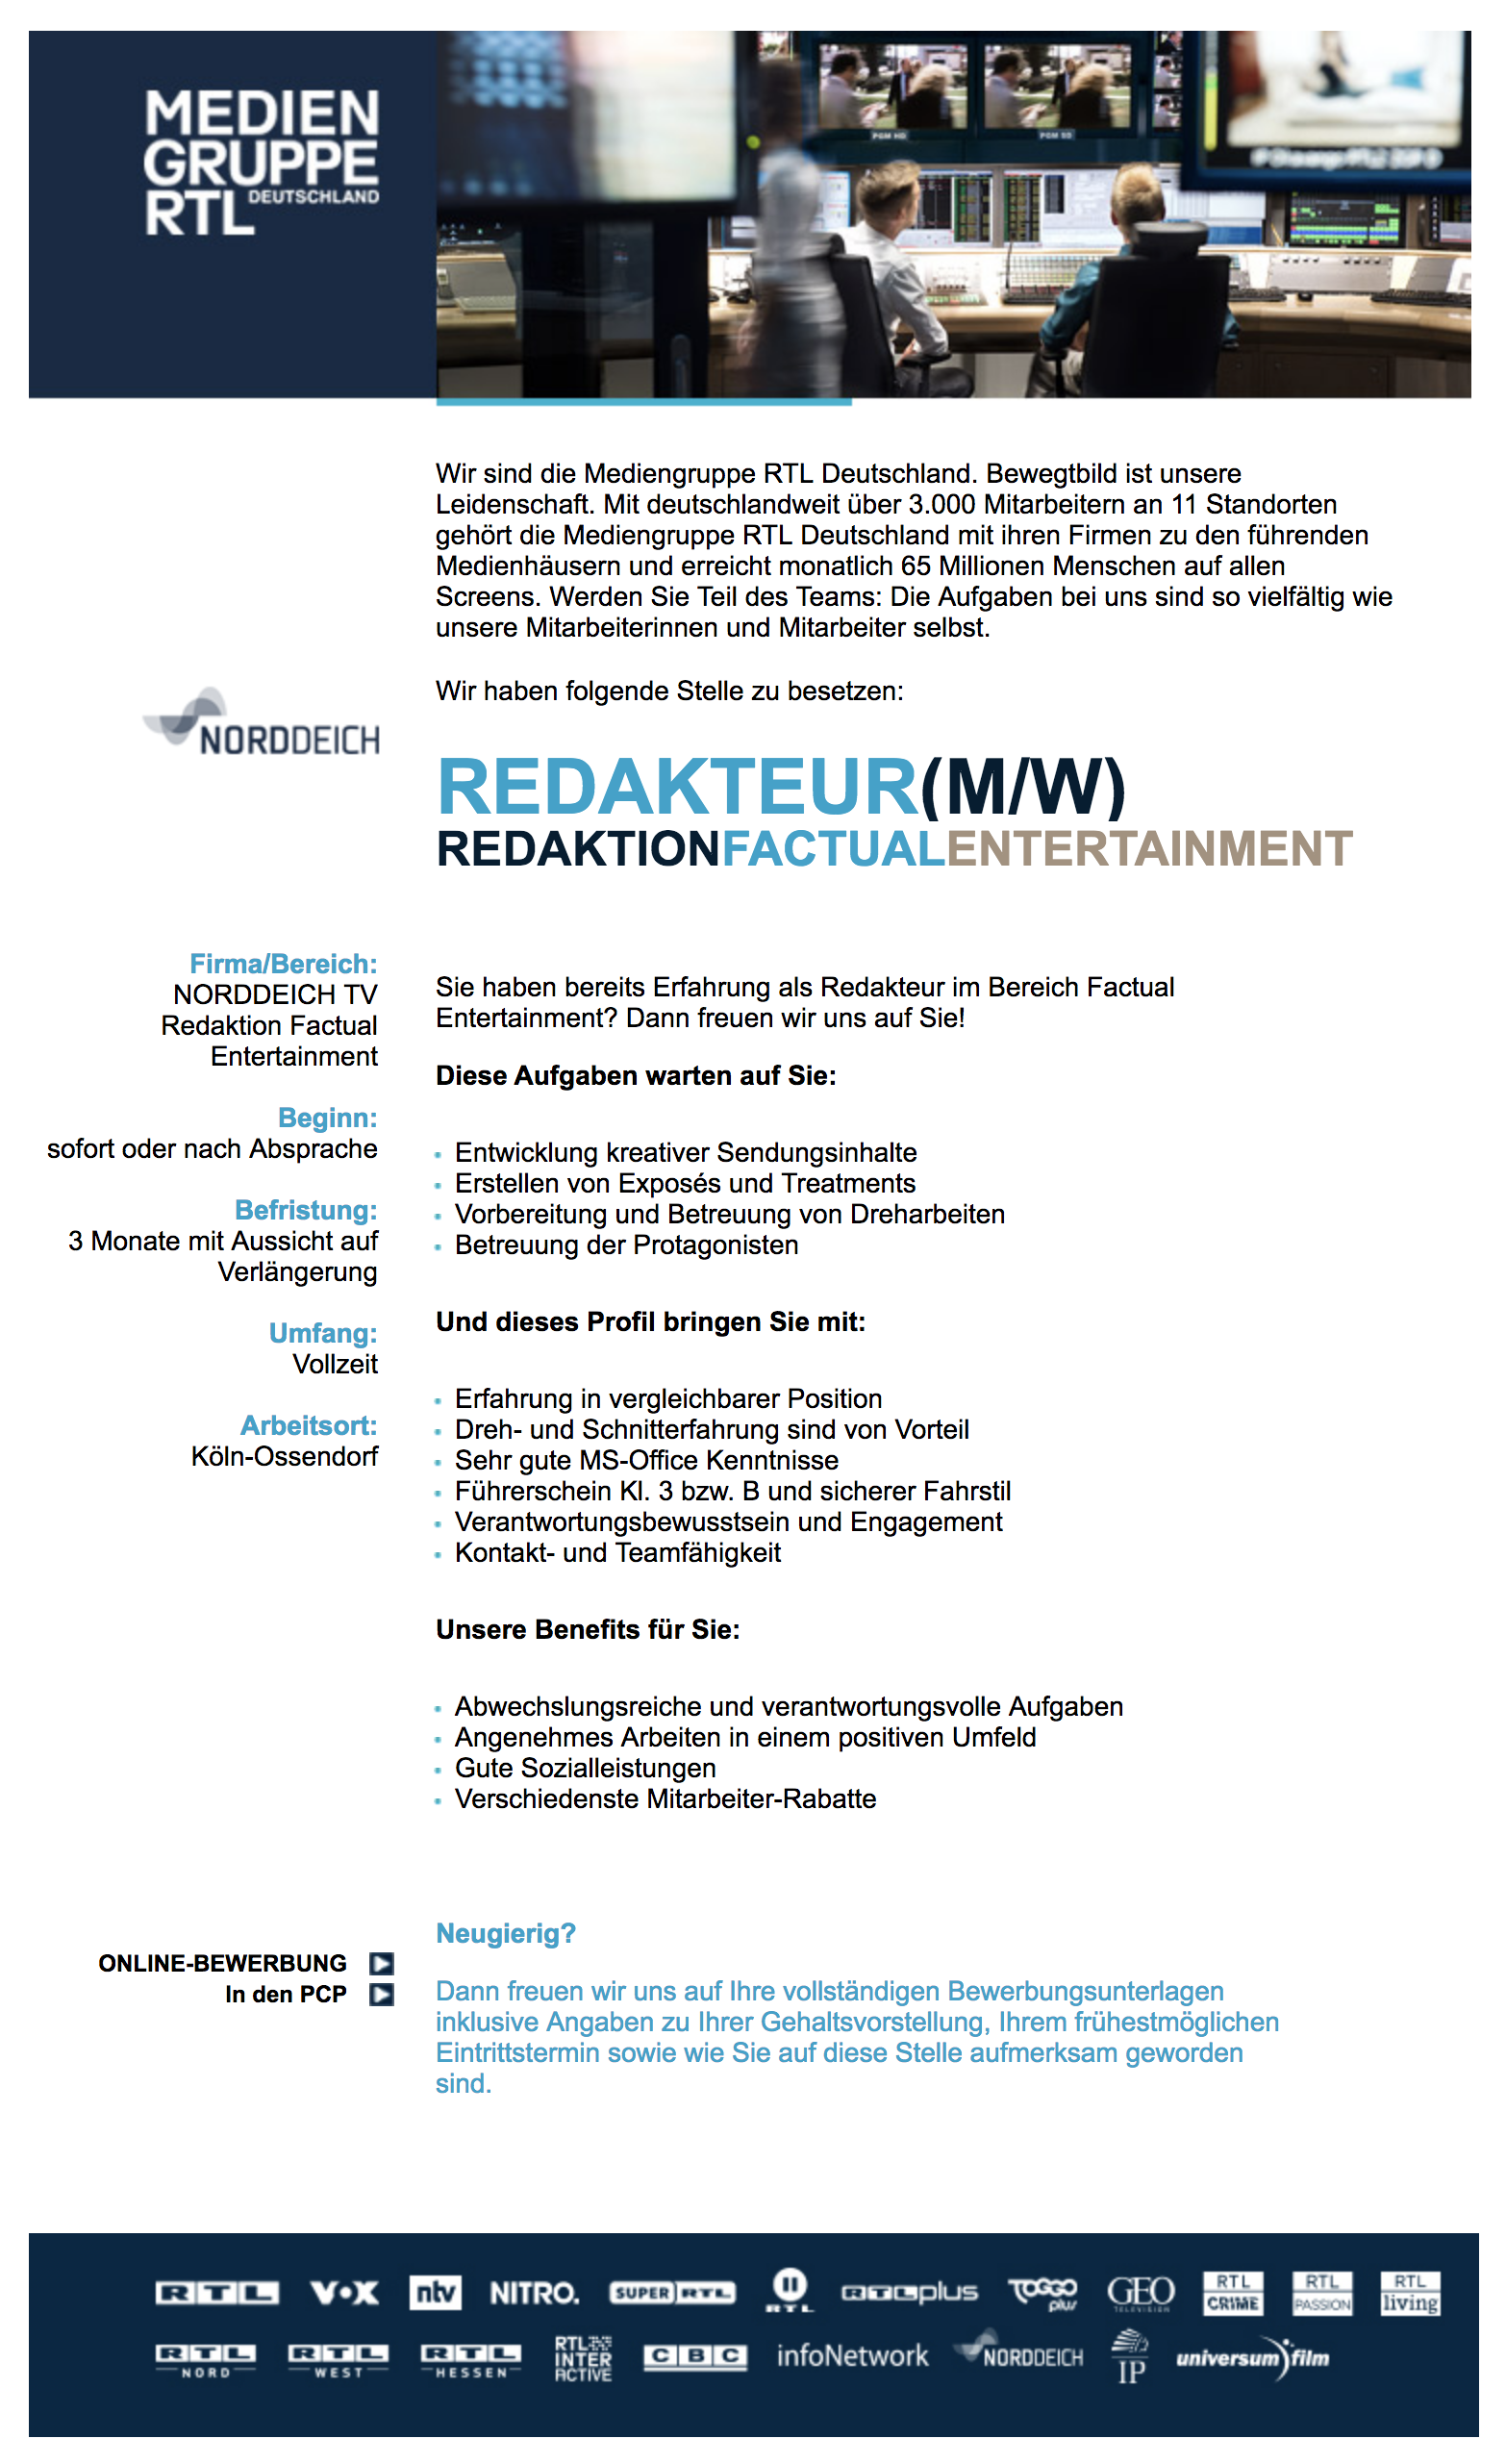 Redakteur (m/w) Redaktion Factual Entertainment (NORDDEICH TV)